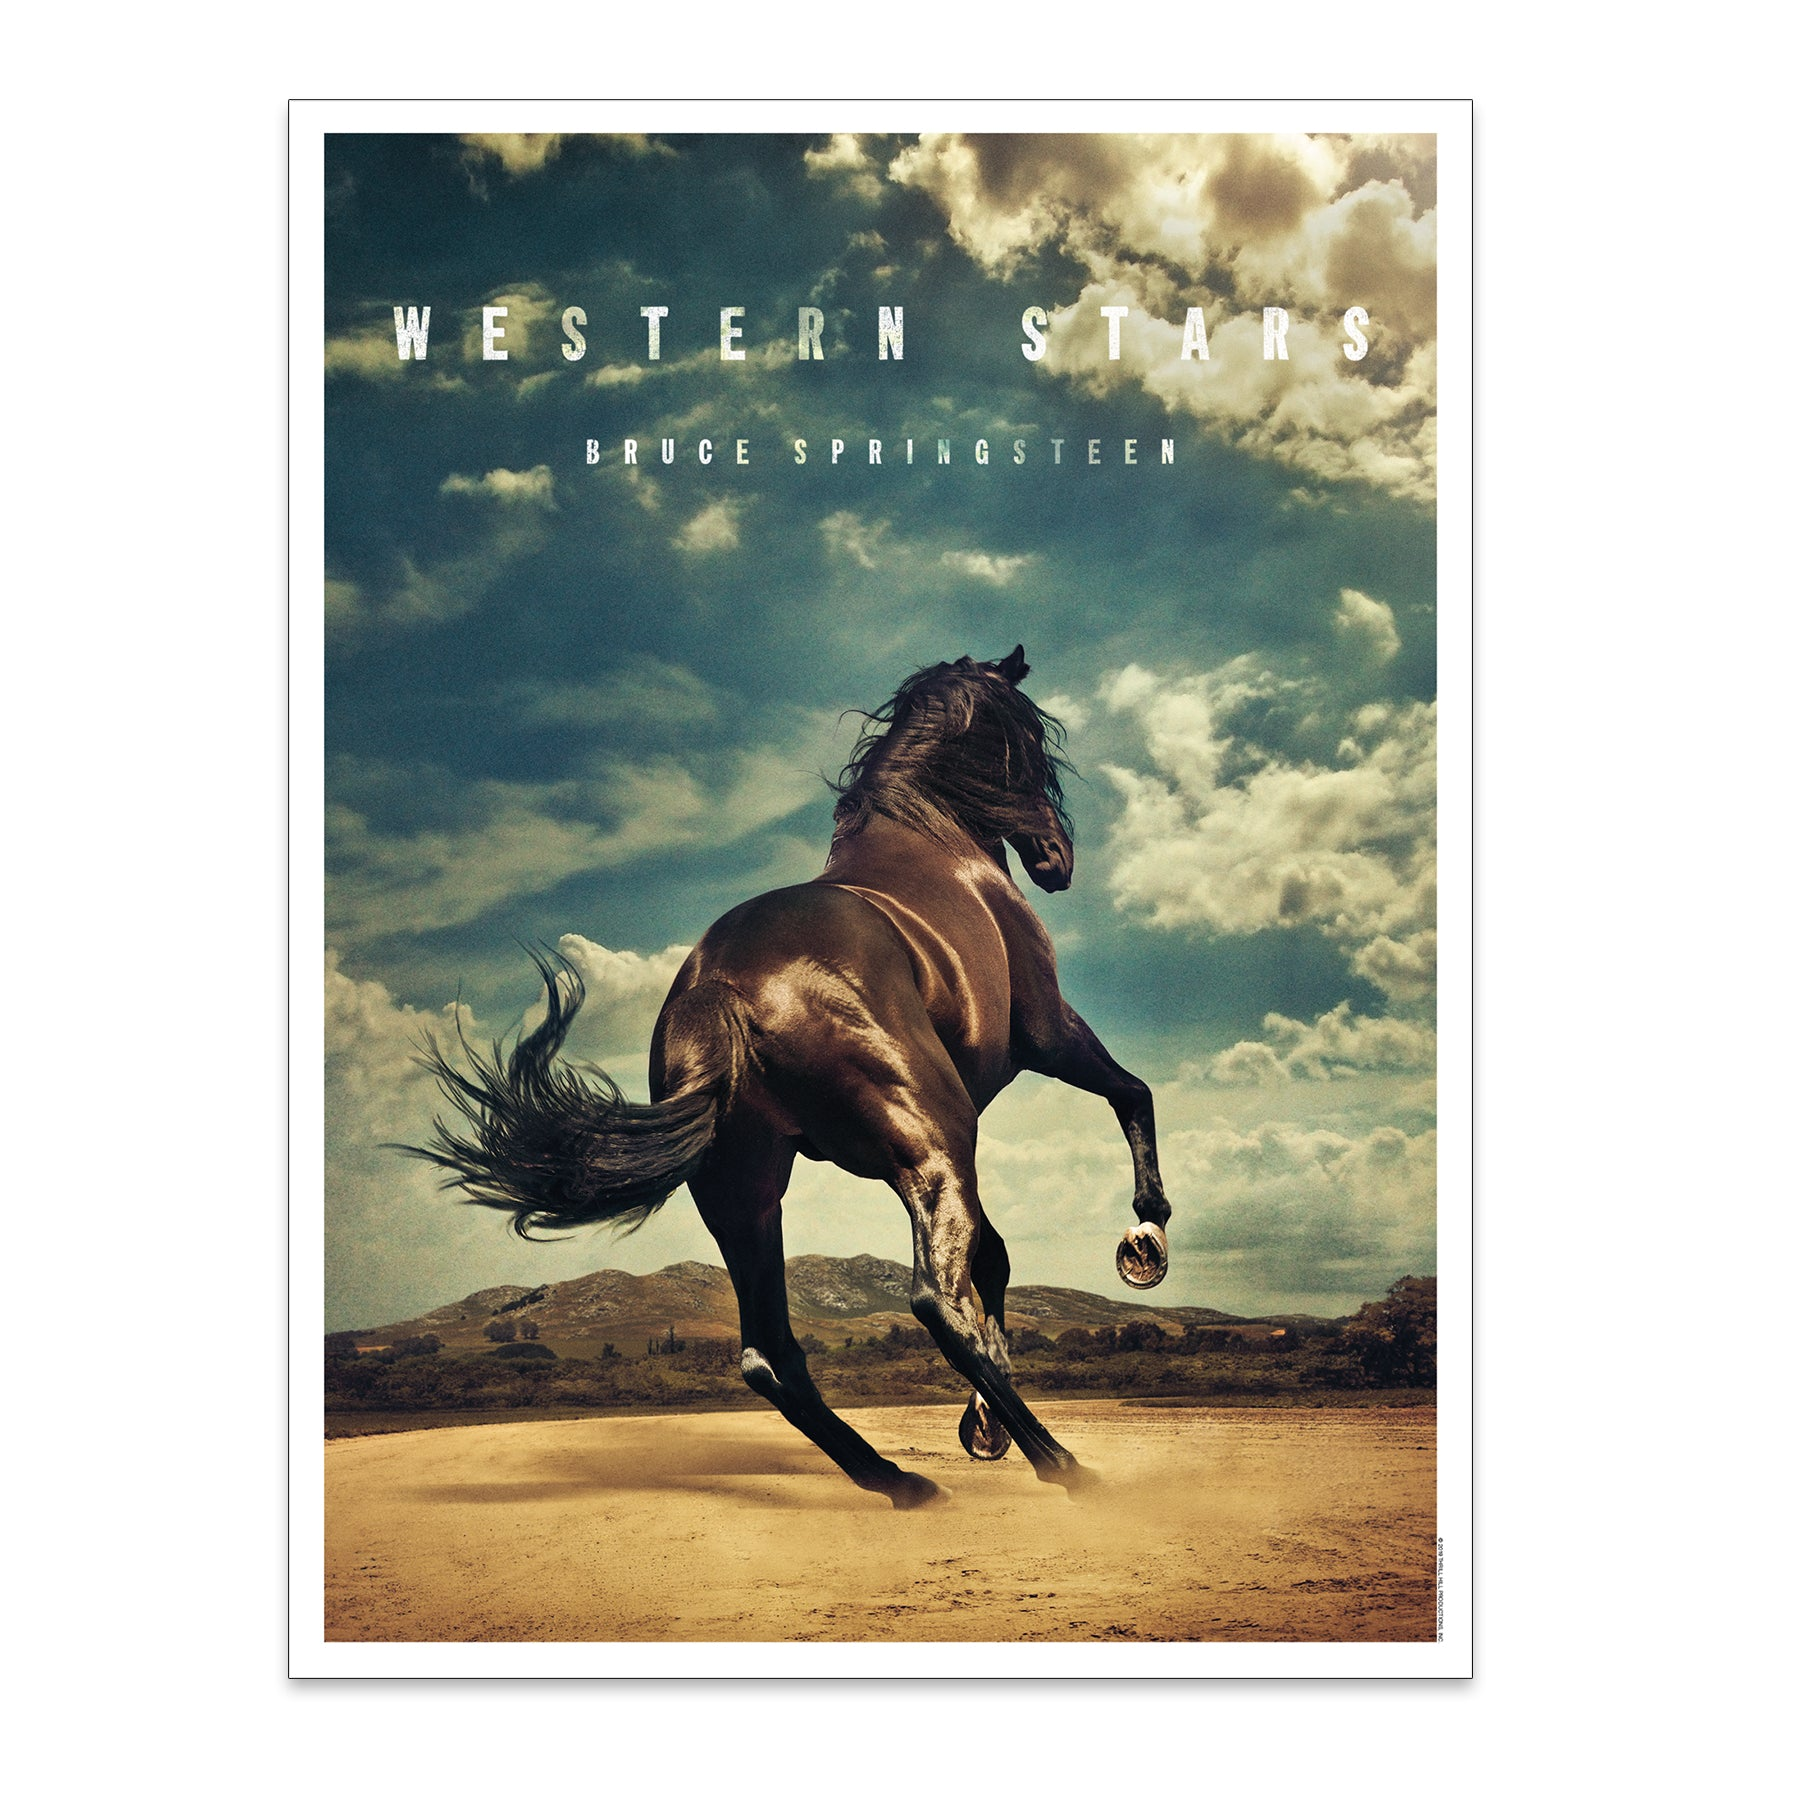 Western Stars Album Cover Lithograph